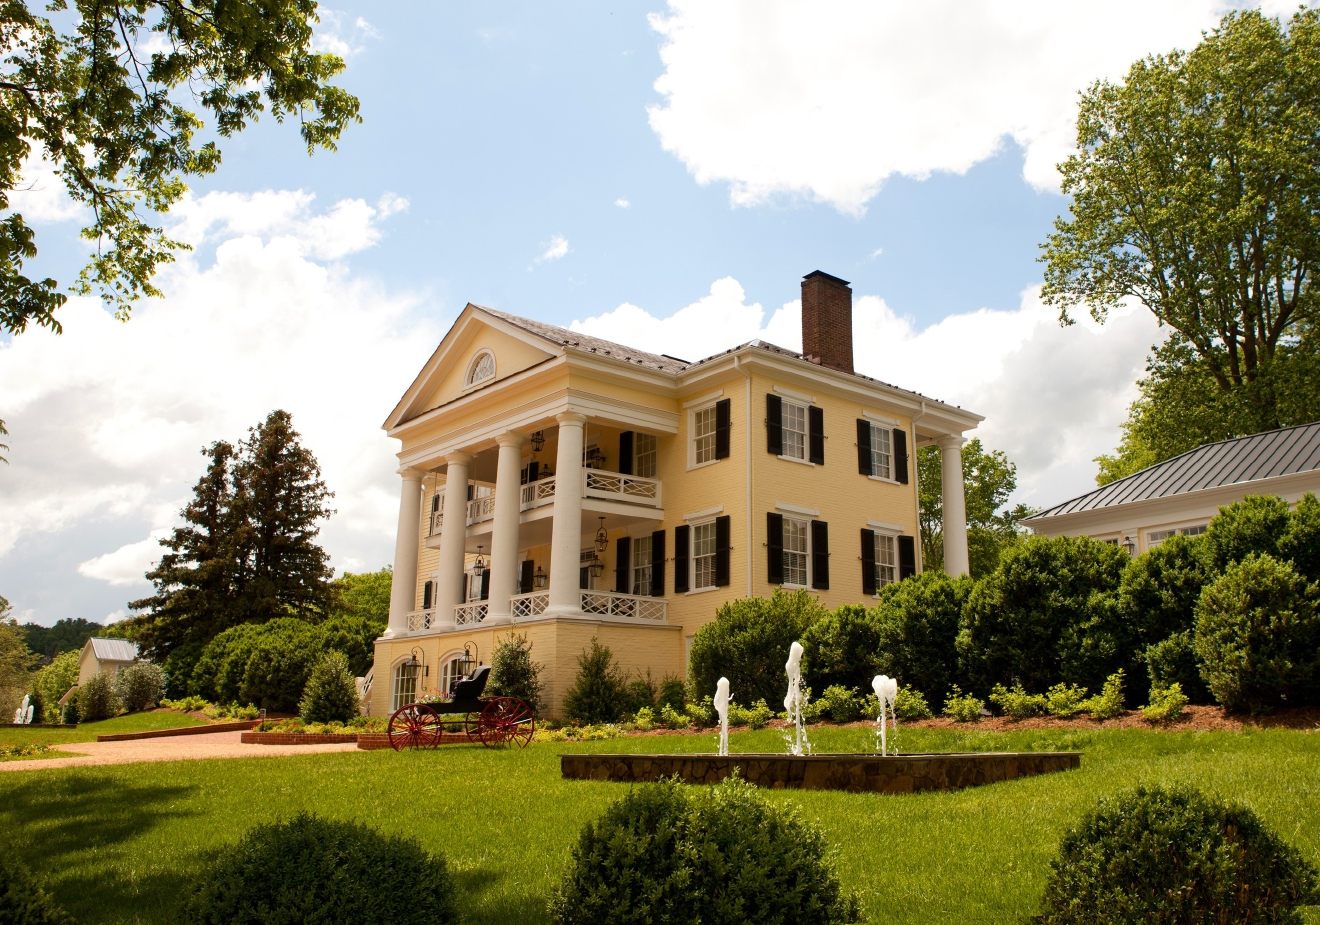 "The first thing that came into view as we drove up to the Inn at Willow Grove was the historic 18th-century, columned plantation house that's on the National Historic Registry. Inside it's hard to miss the art at every turn. Owner Charlene Scibal, who had run an art gallery describes the inn as ""a unique blend of chic and elegant--urban meets plantations style."" (Image: Courtesy Inn at Willow Grove)"